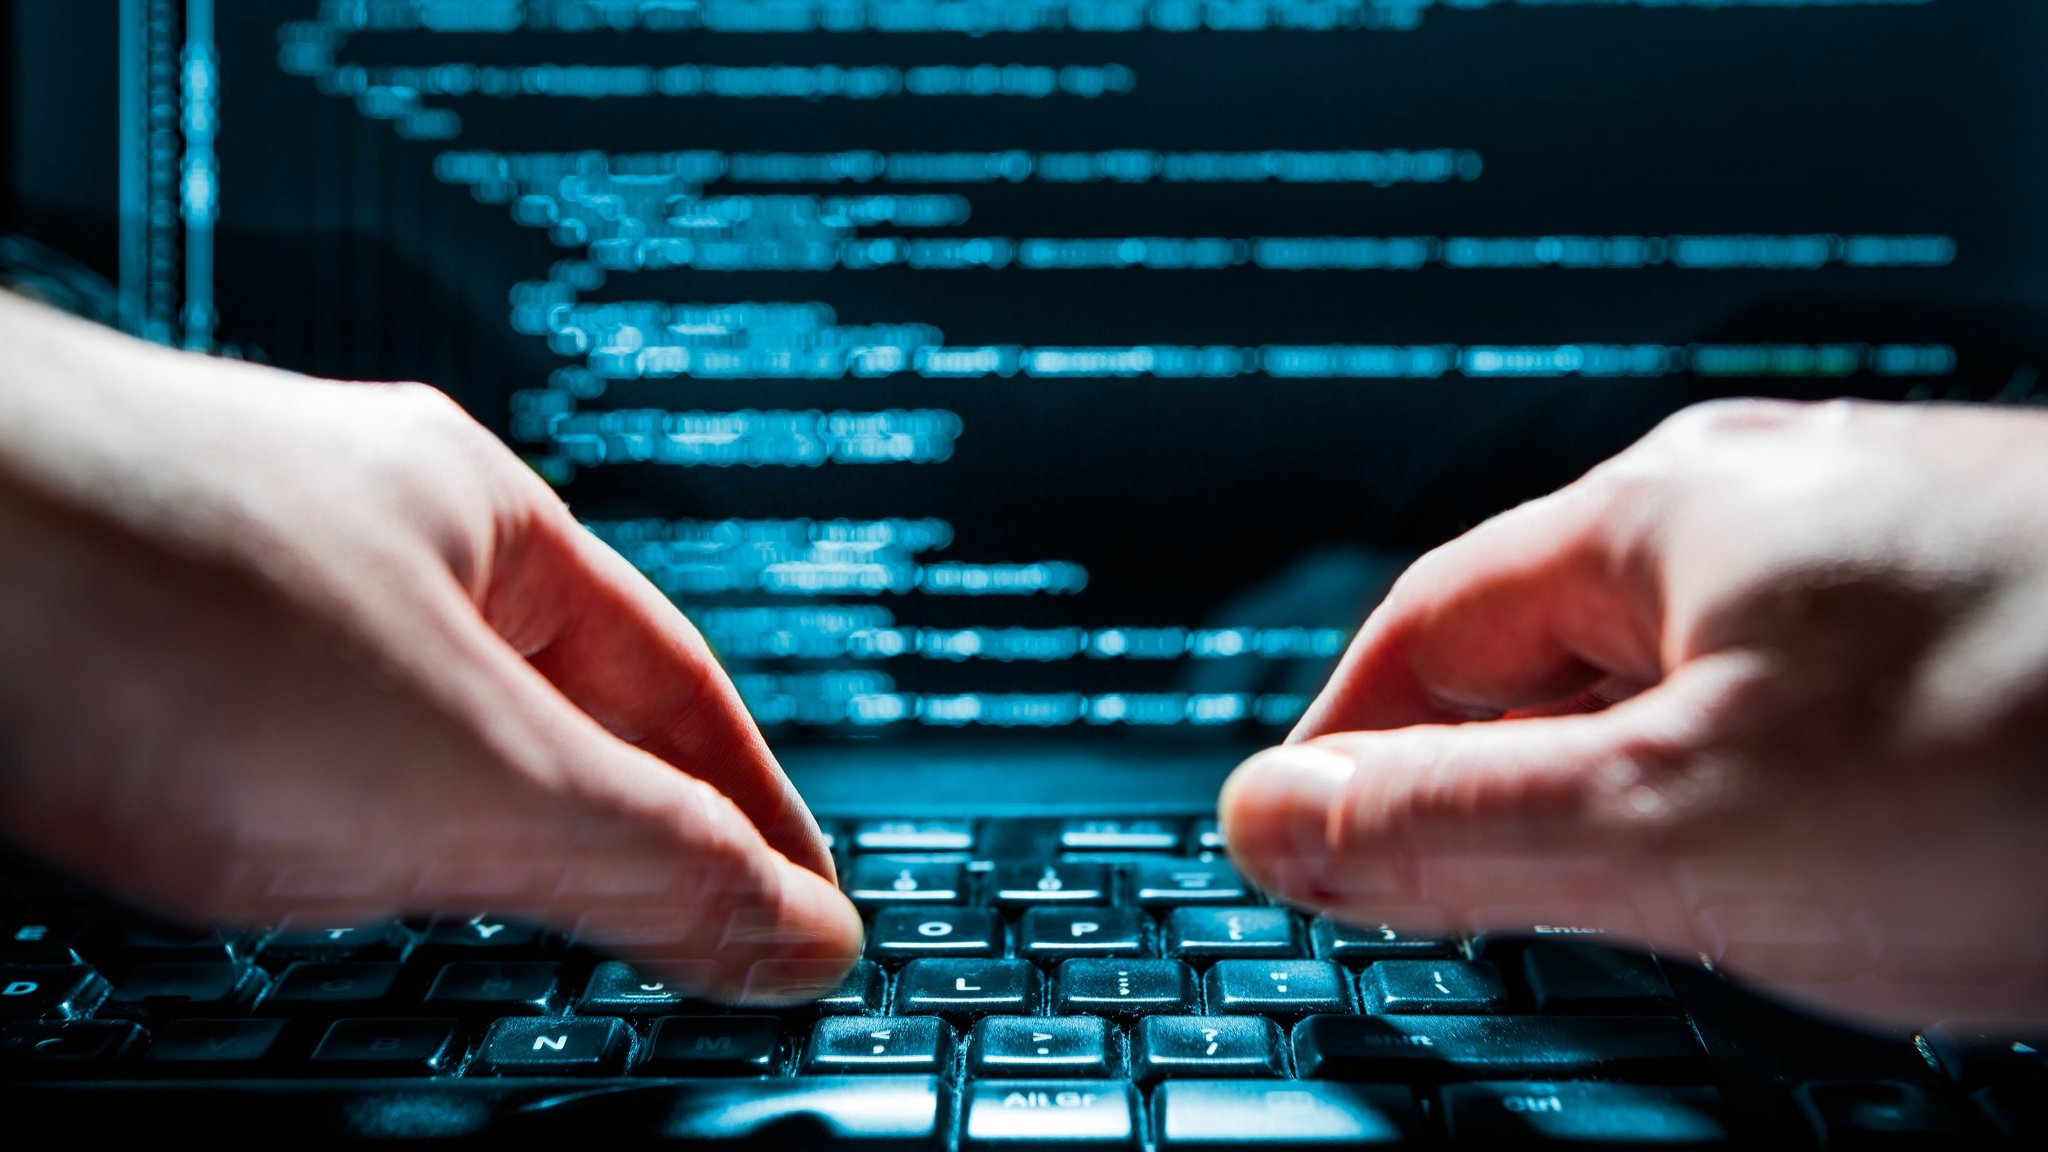 Alert over booby-trapped security software